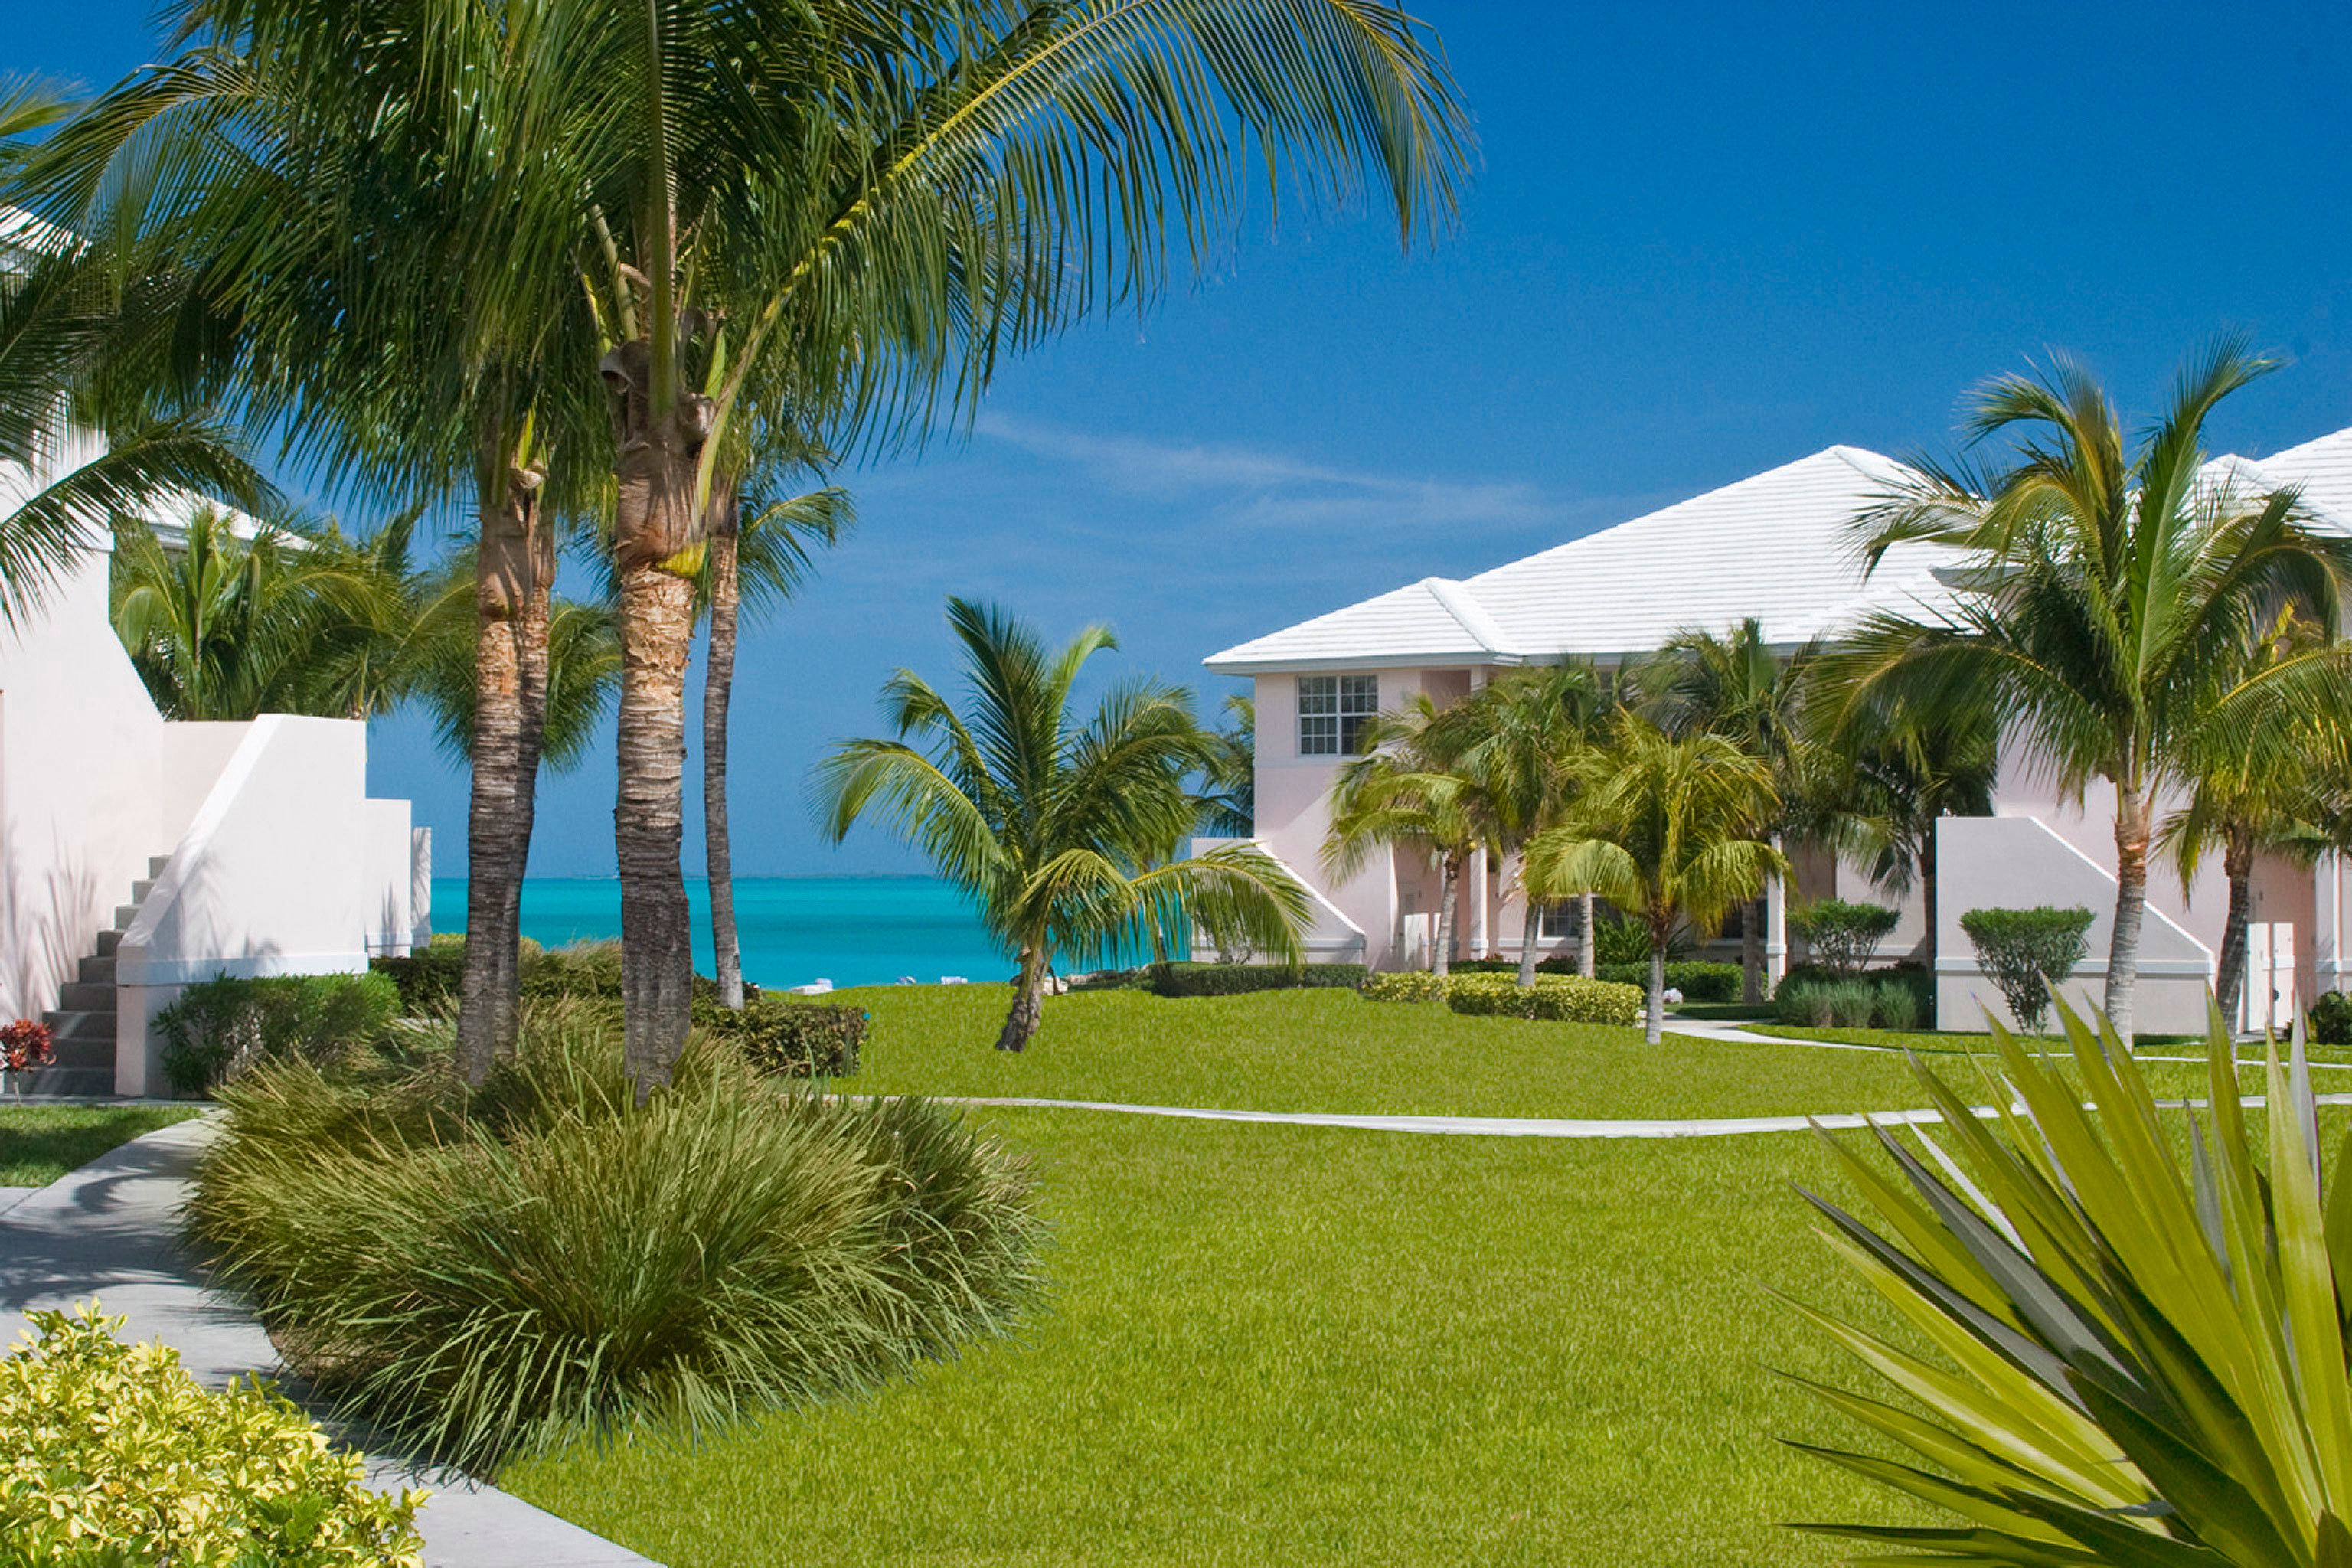 Beachfront Exterior Grounds Resort tree palm grass sky property swimming pool palm family arecales home caribbean plant Beach Villa lawn Pool Garden lined